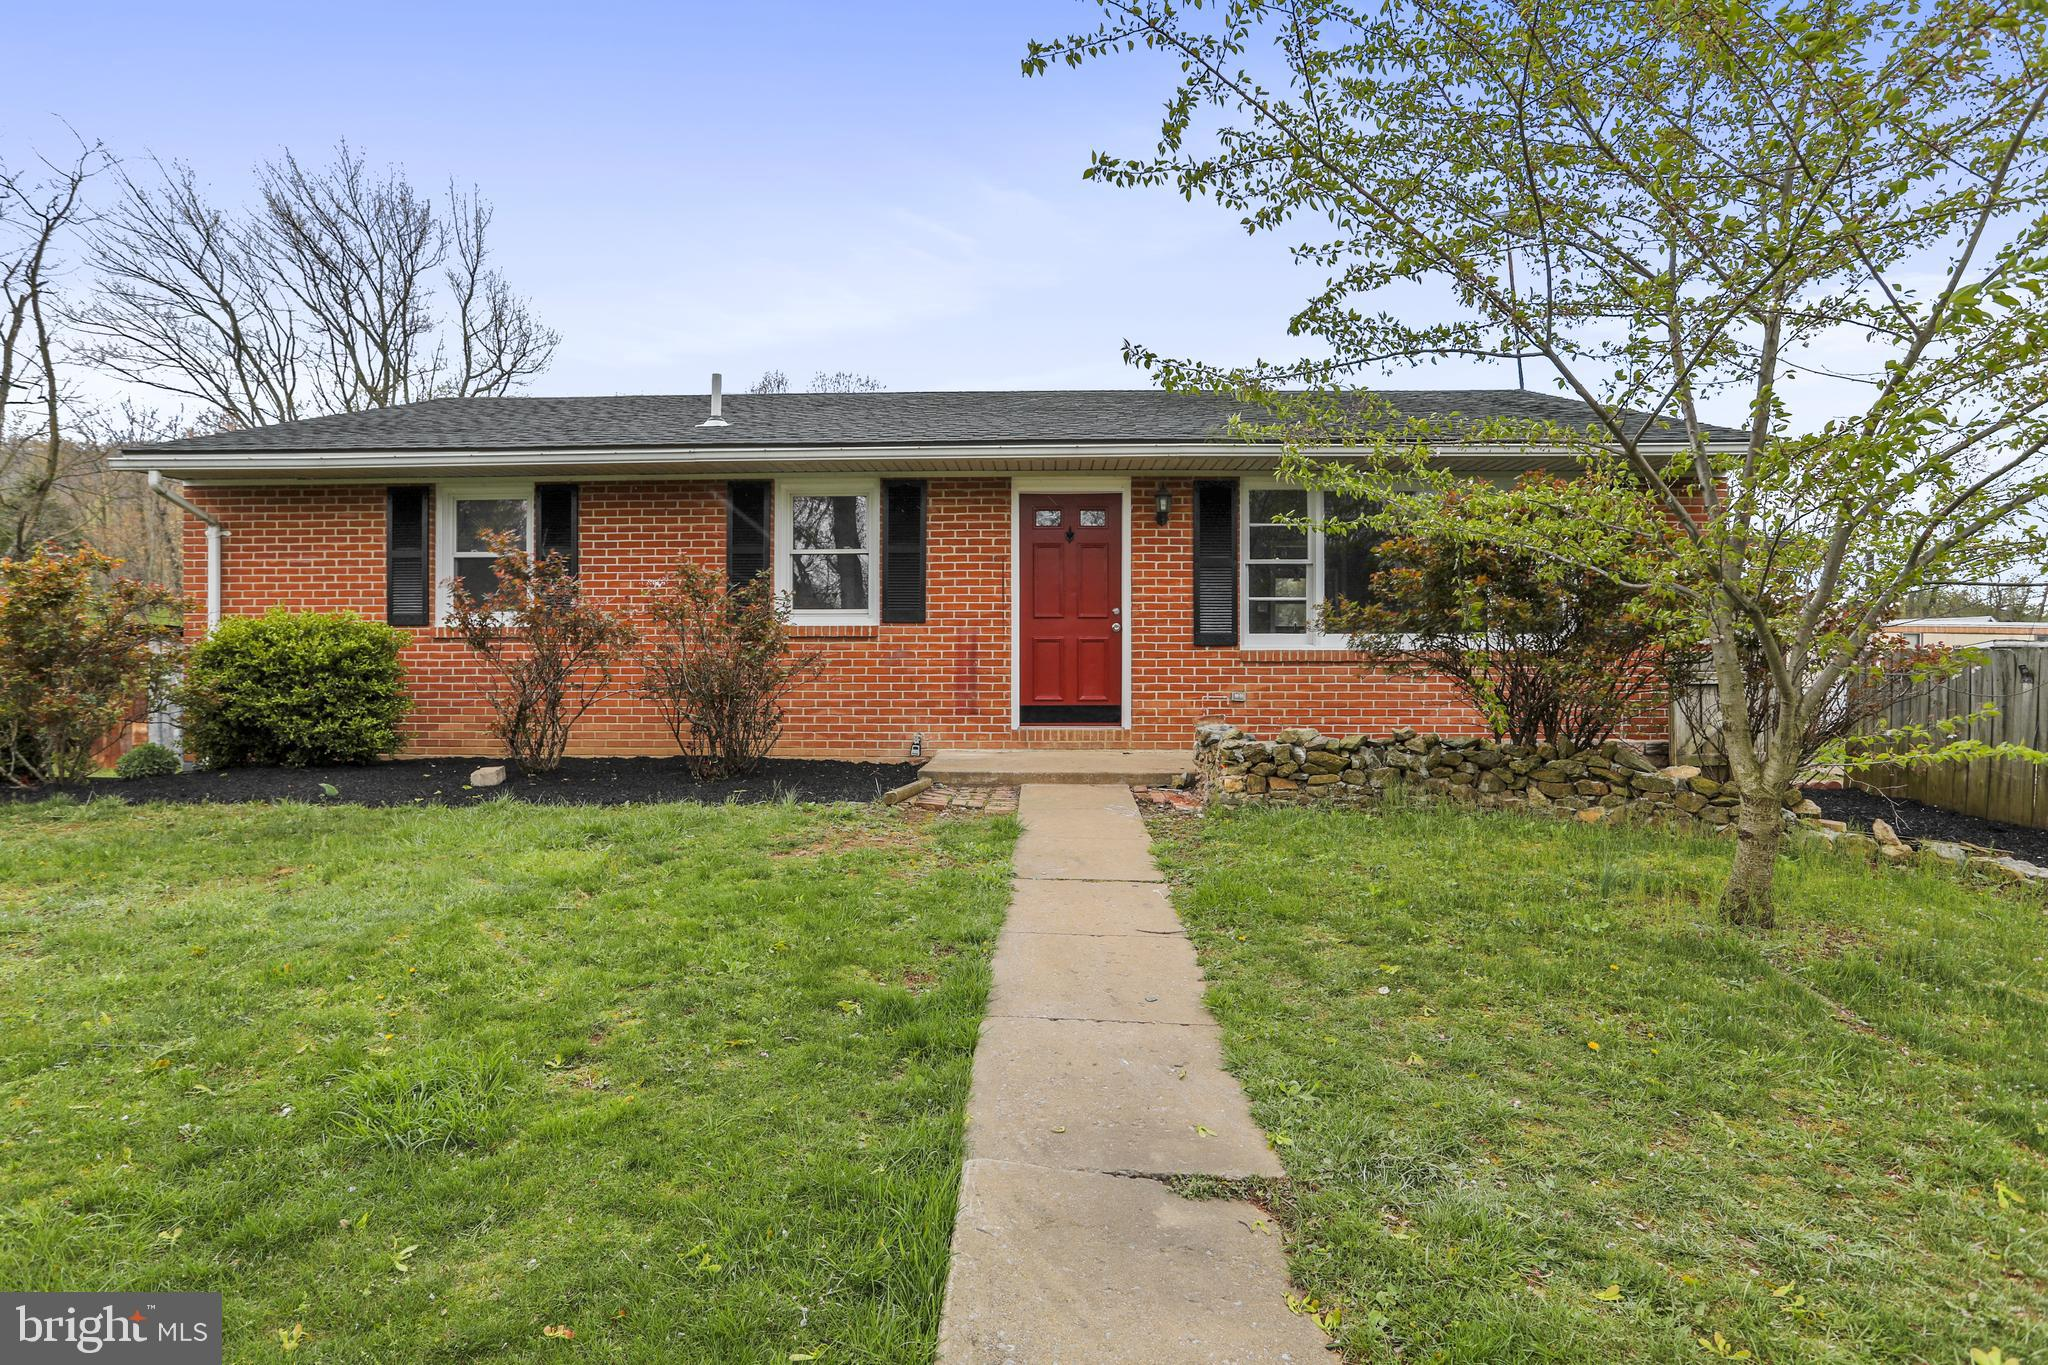 14702 Mercersburg Road, Clear Spring, MD 21722